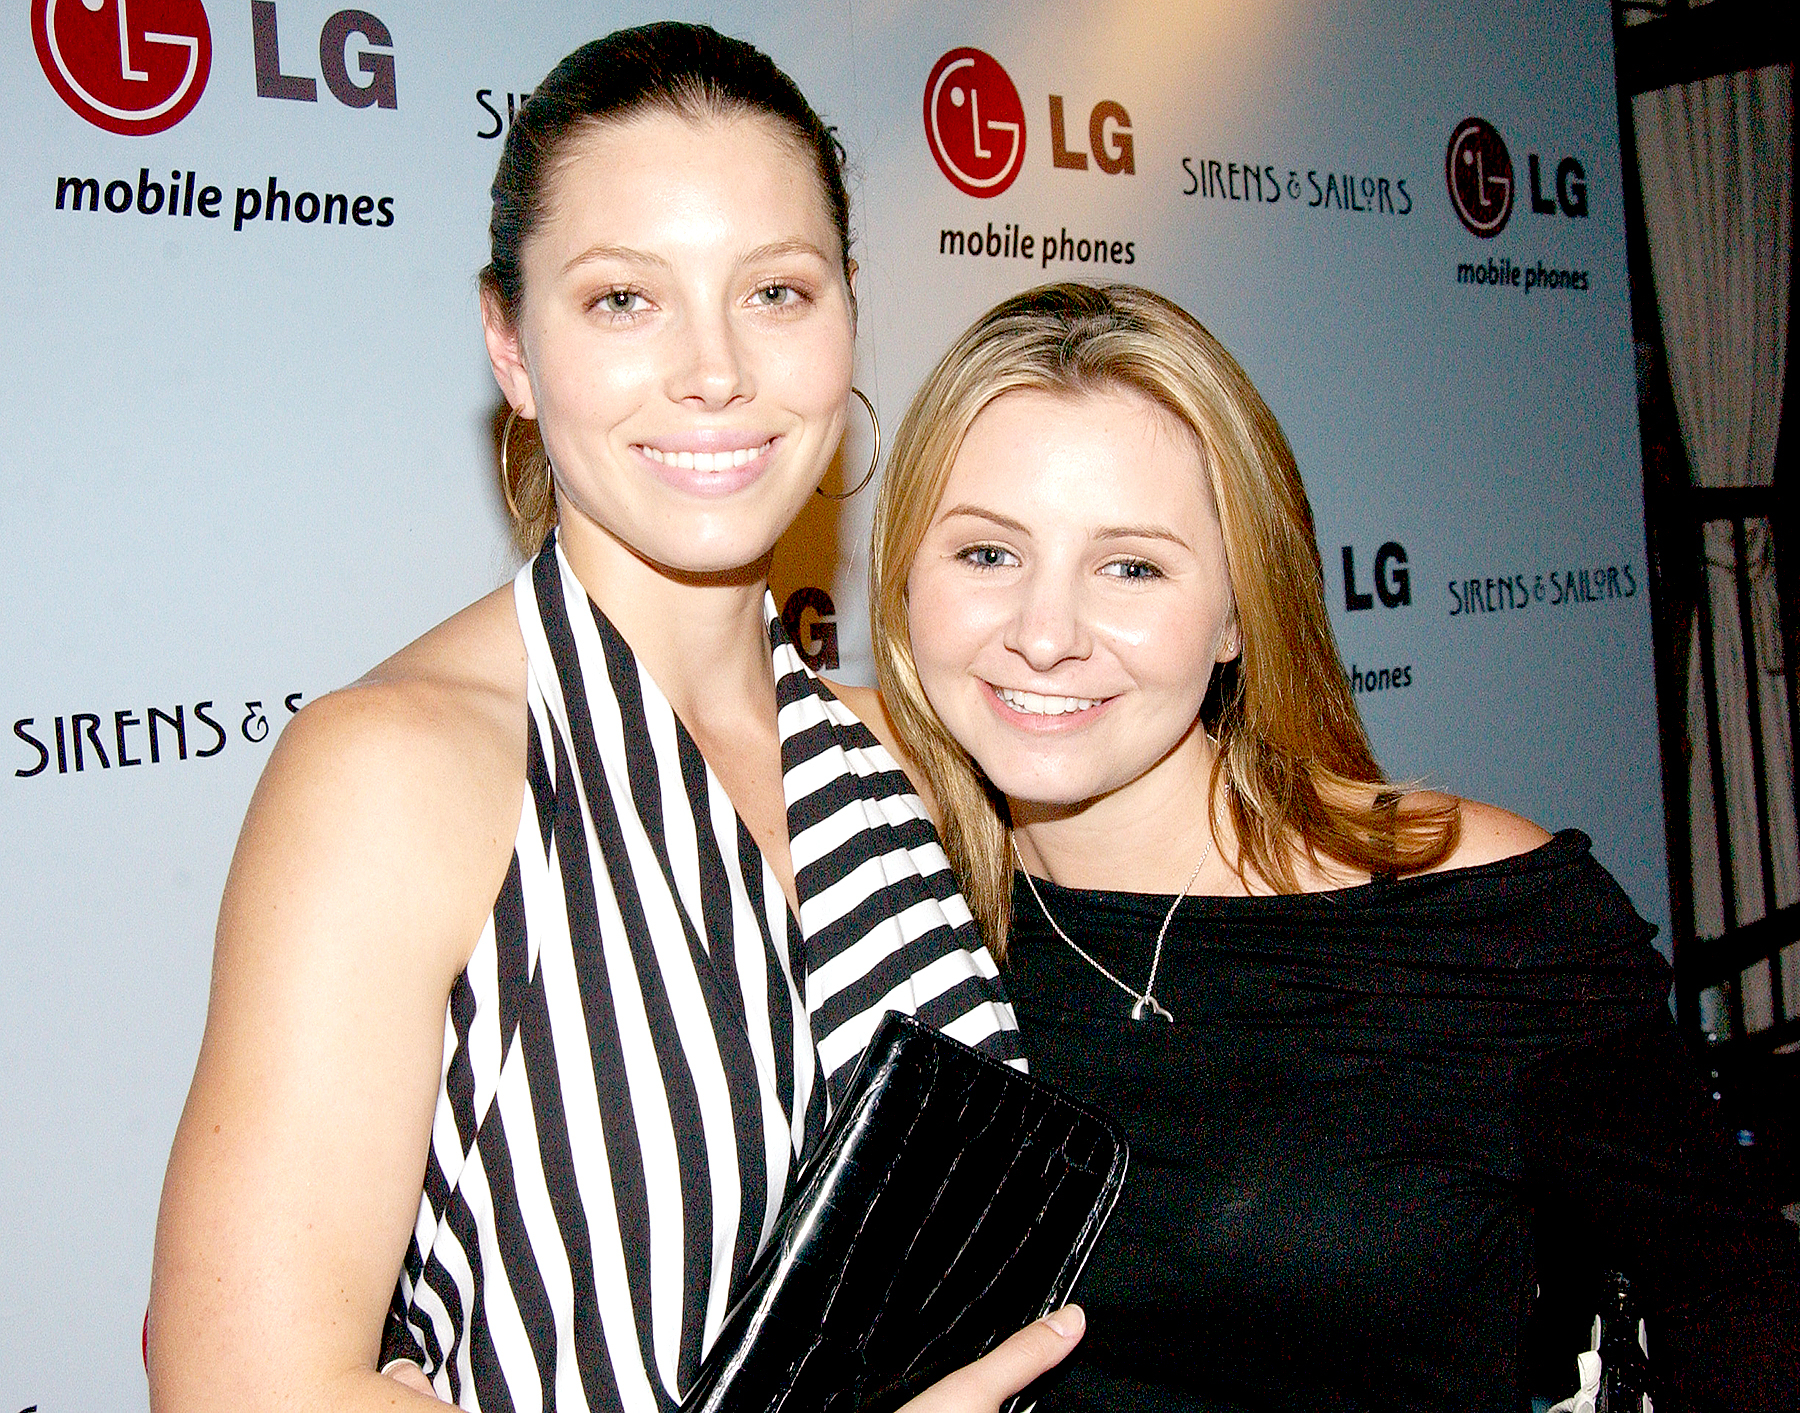 Jessica Biel and Beverley Mitchell helped LG Mobile Phones celebrate Sirens & Sailors fashion show and cocktail reception in 2003.